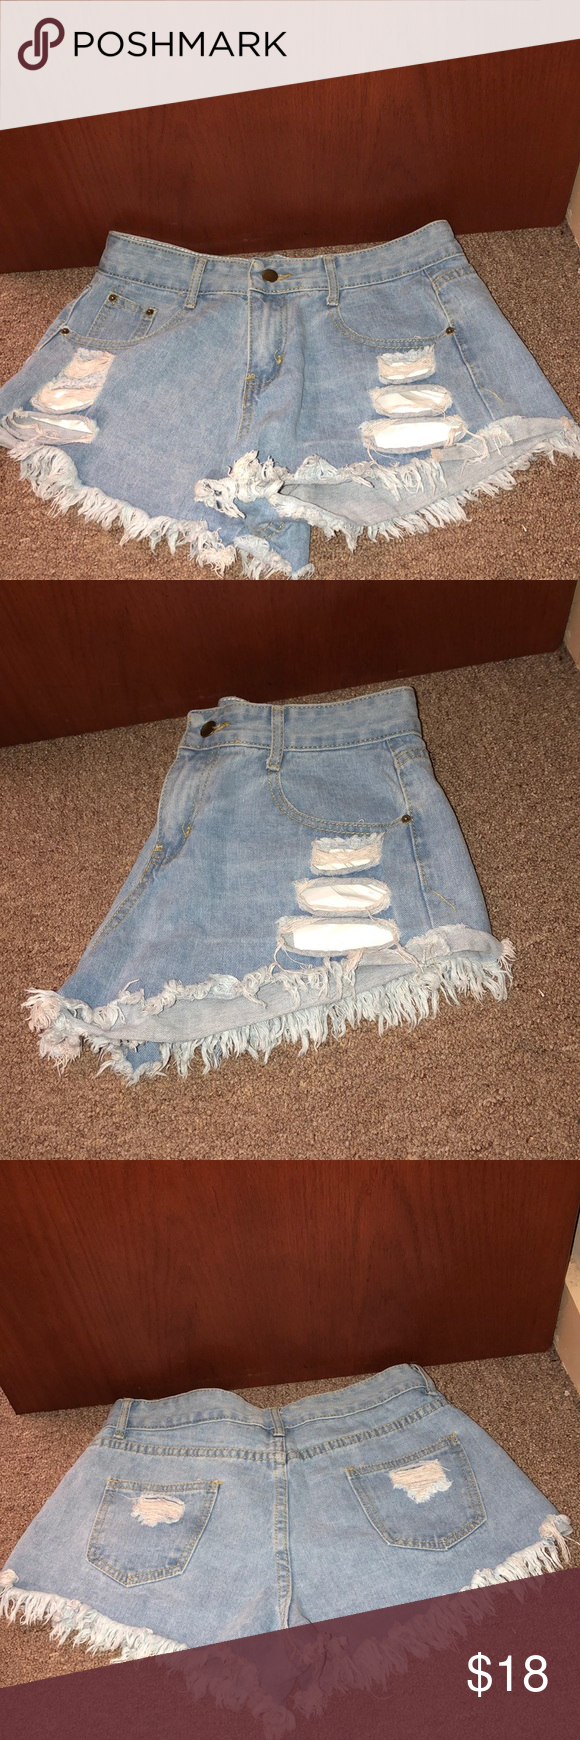 Distressed light blue jean shorts Good condition  90% Cotton  10% Spandex Shorts Jean Shorts #lightblueshorts